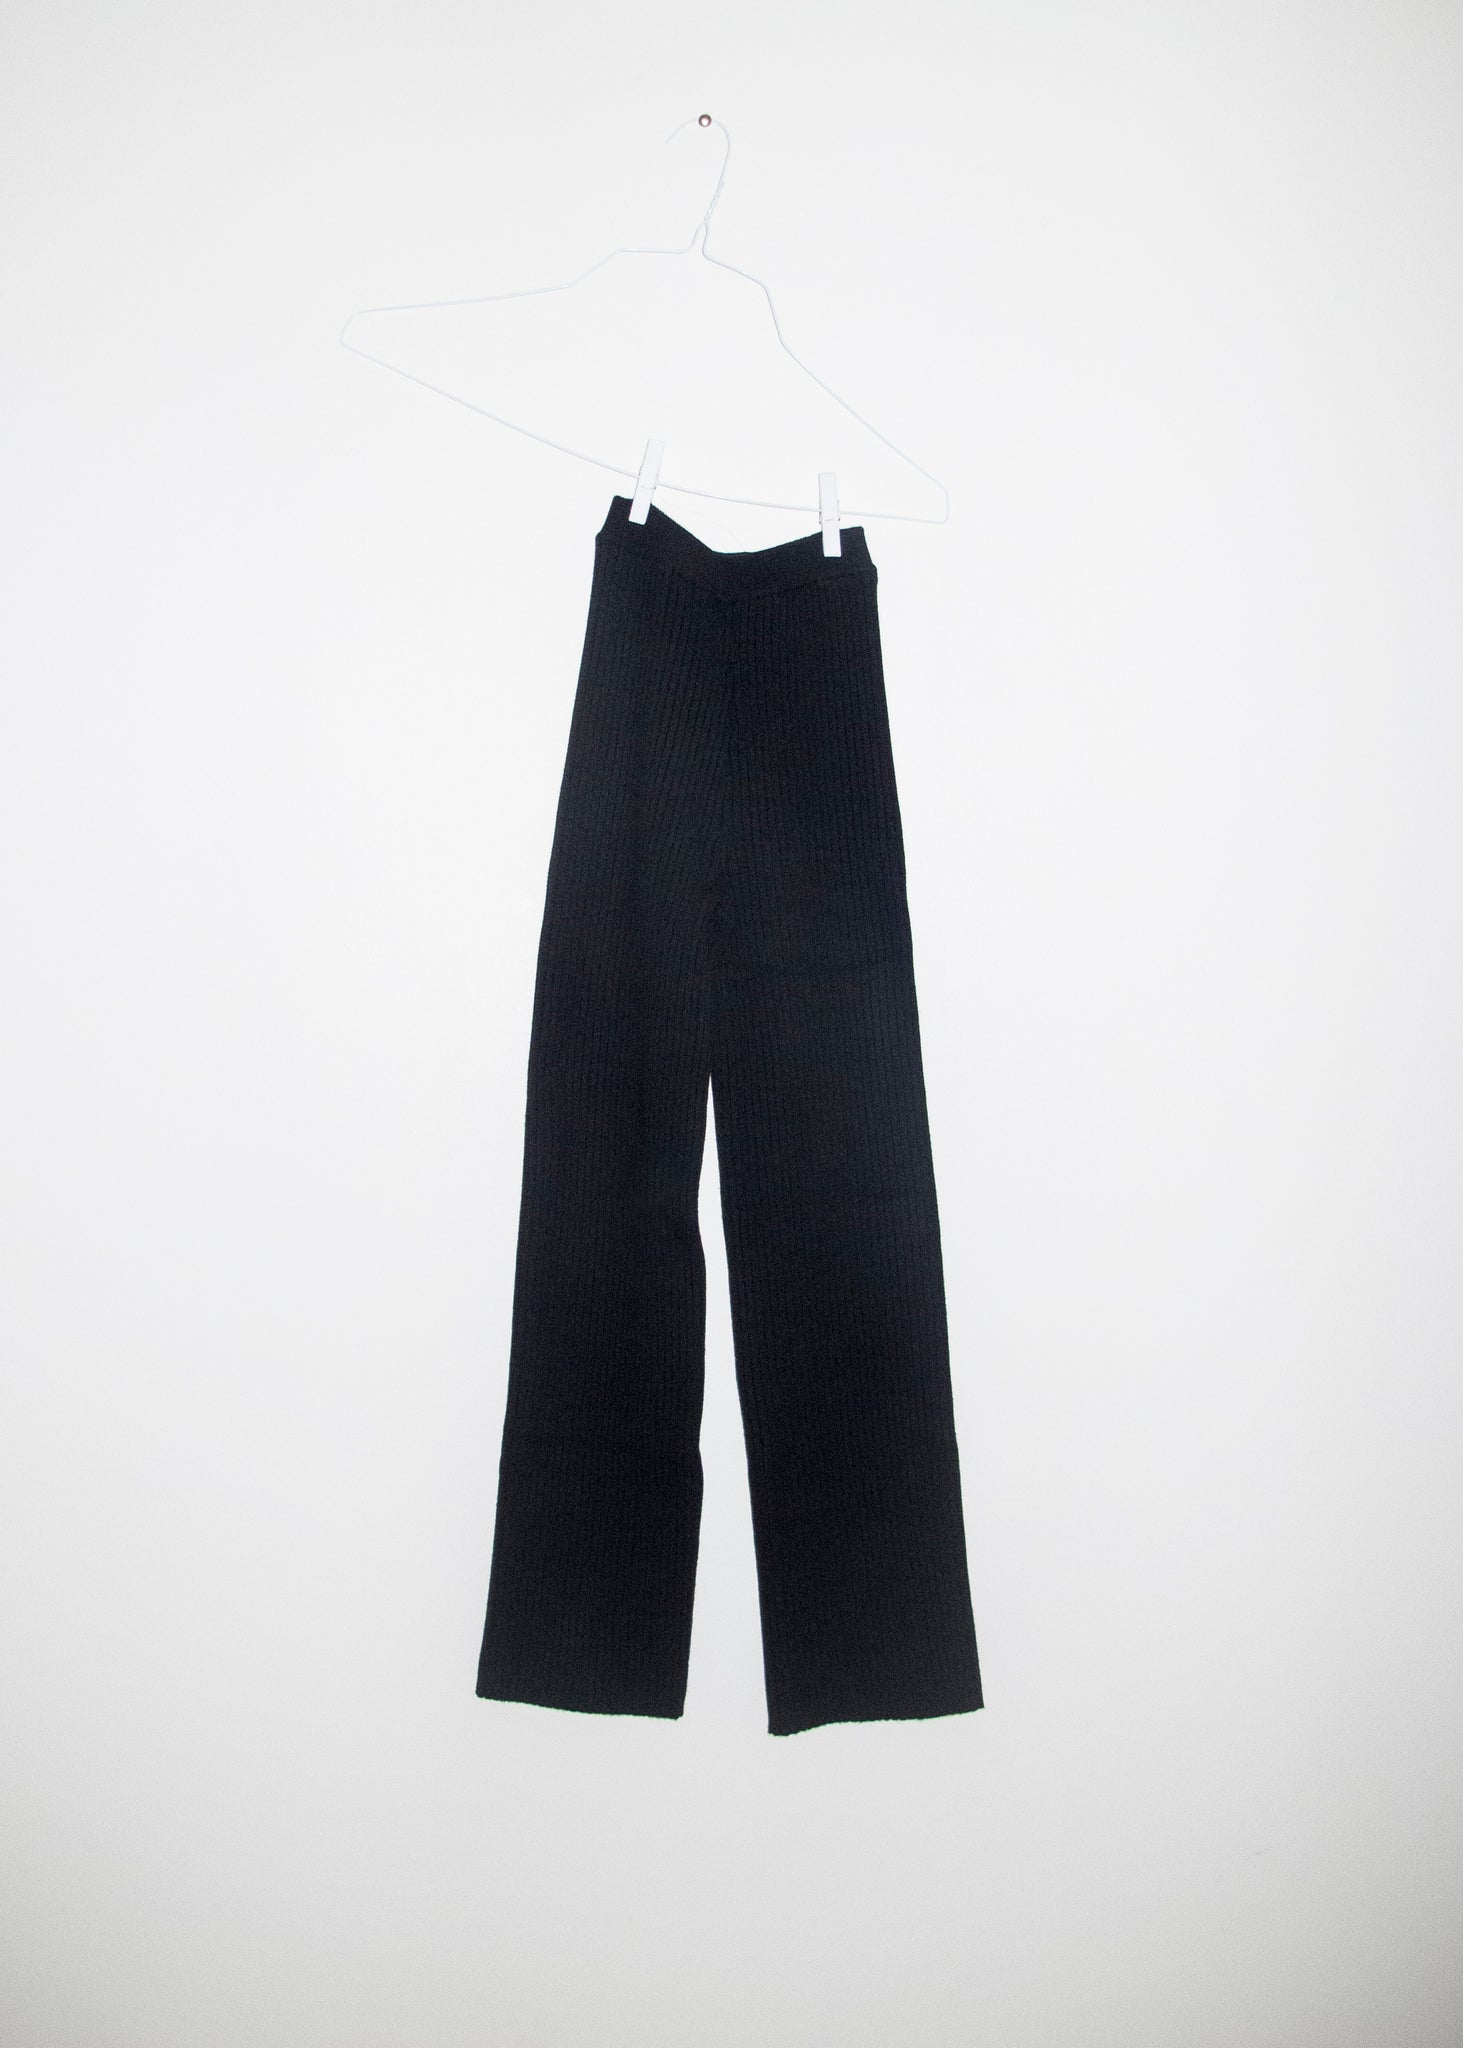 NONNA Pants in Onyx